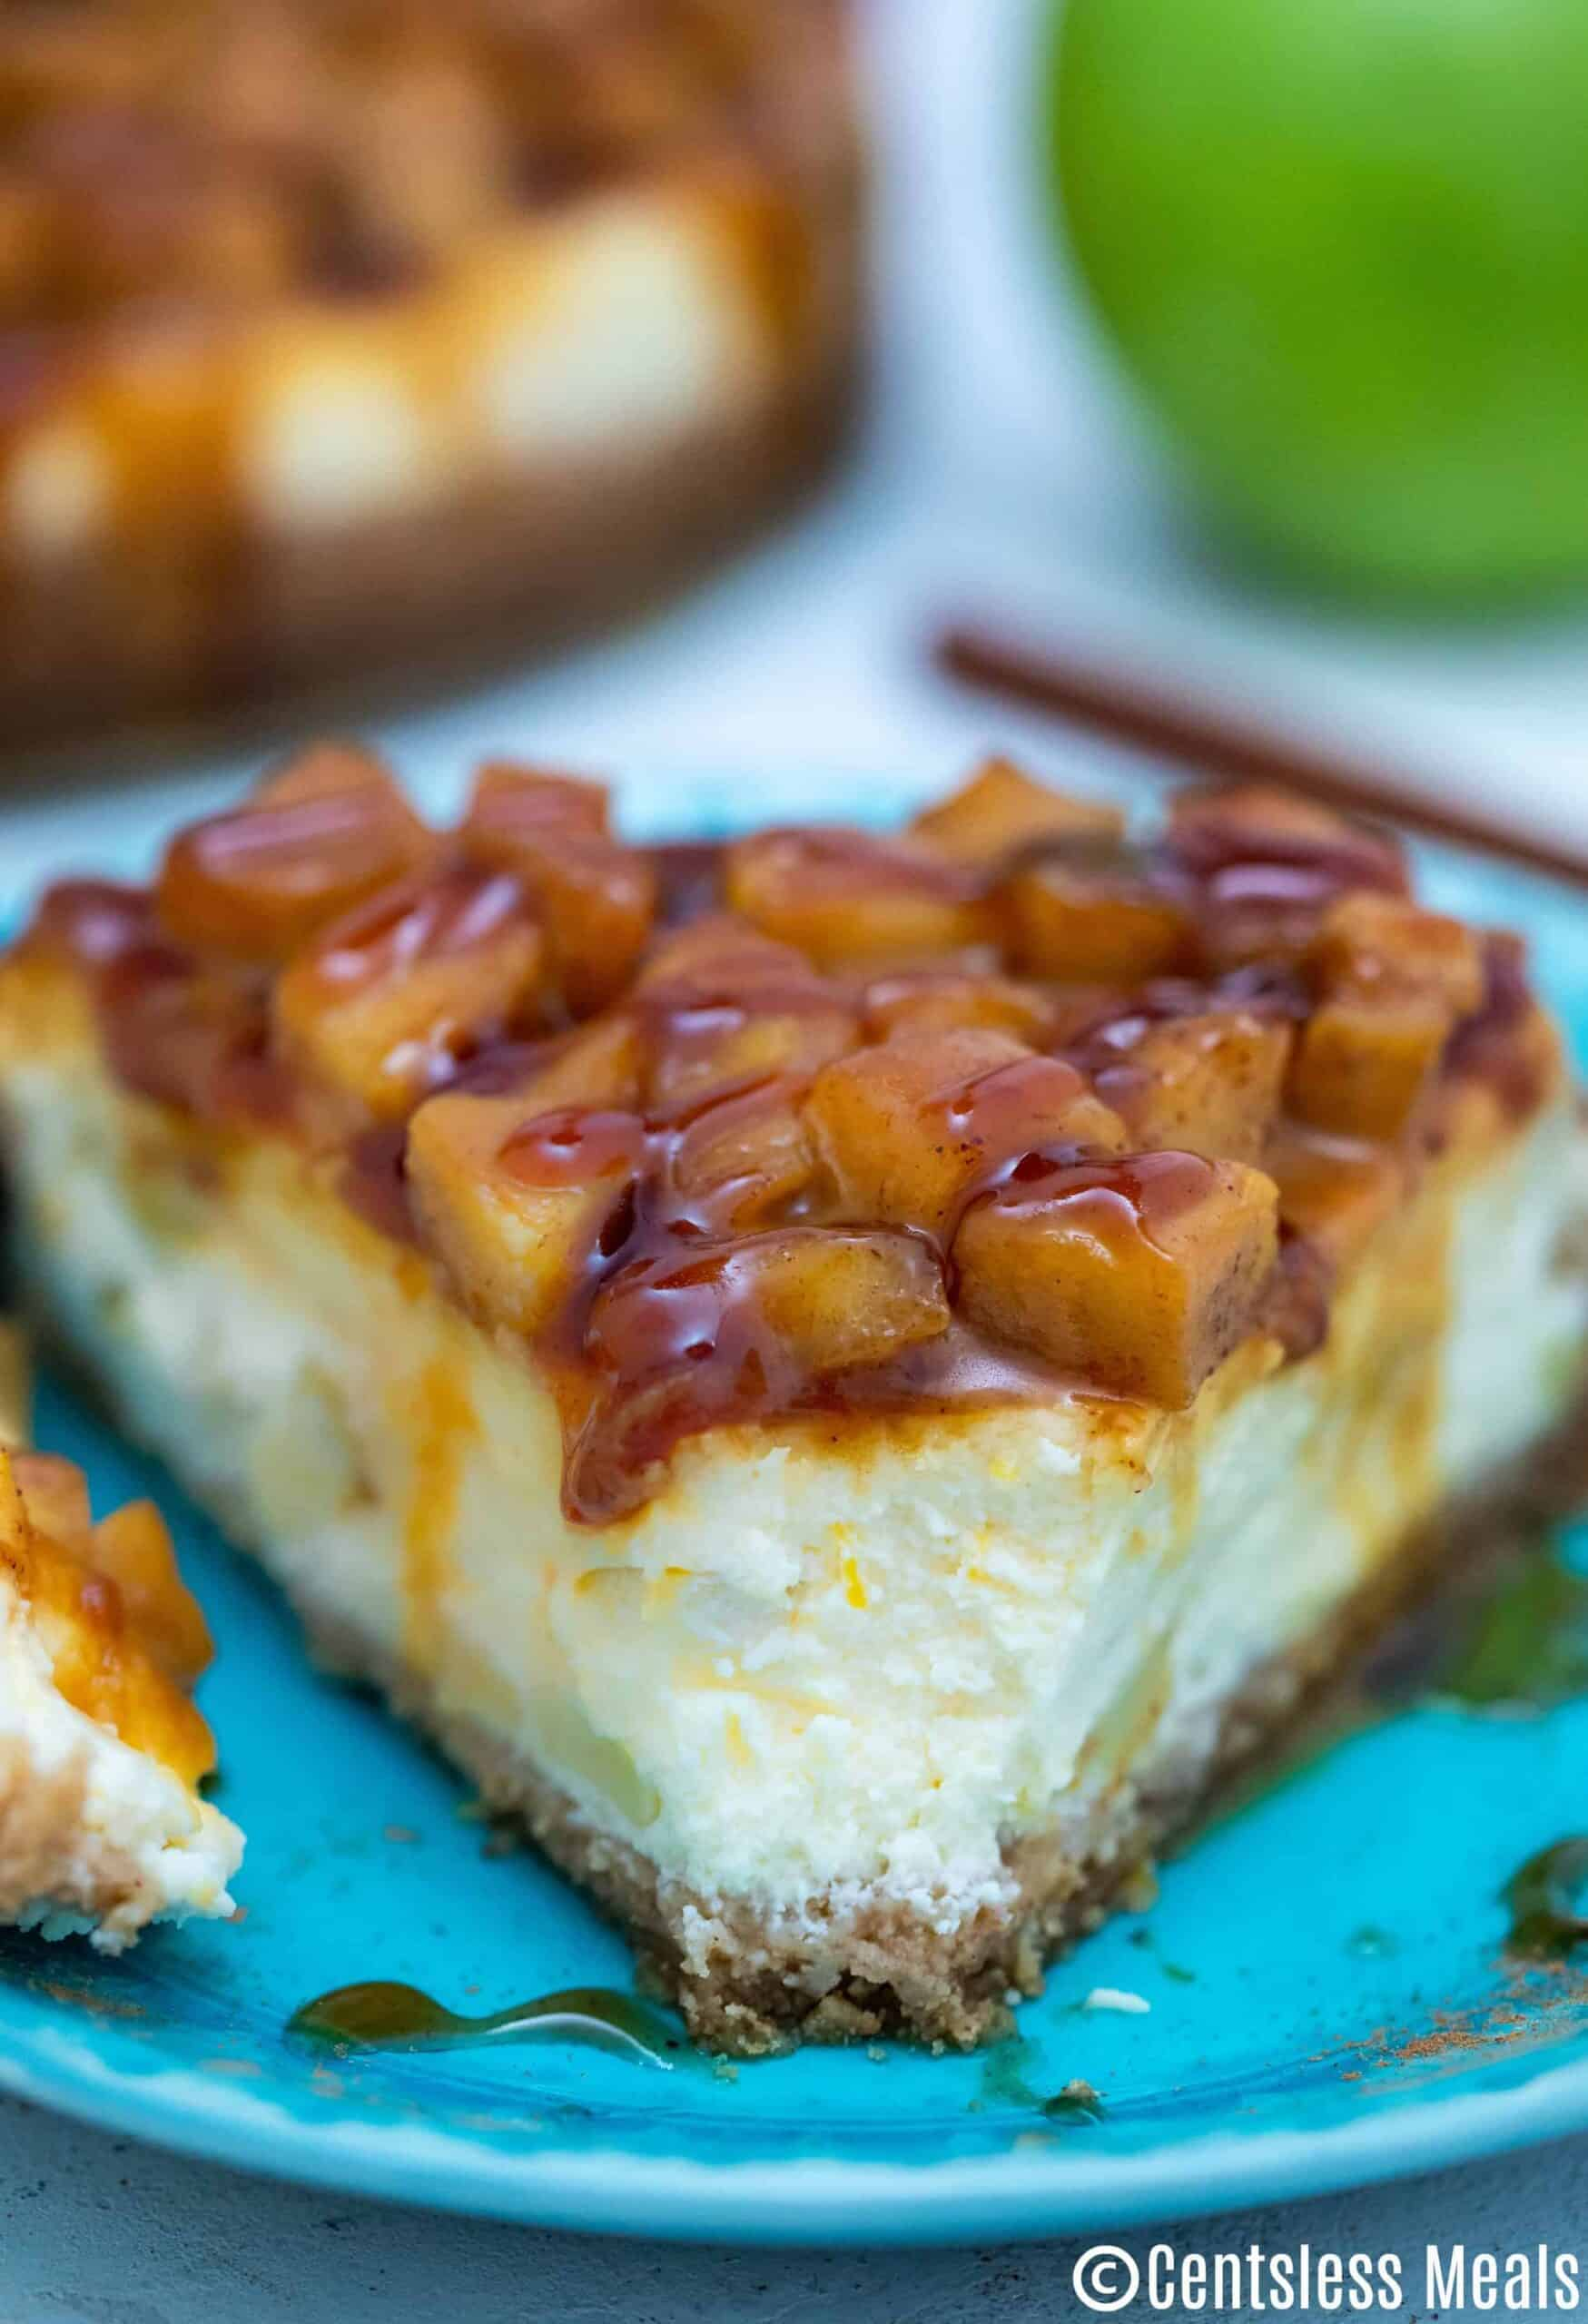 Caramel Apple Cheesecake on a blue plate